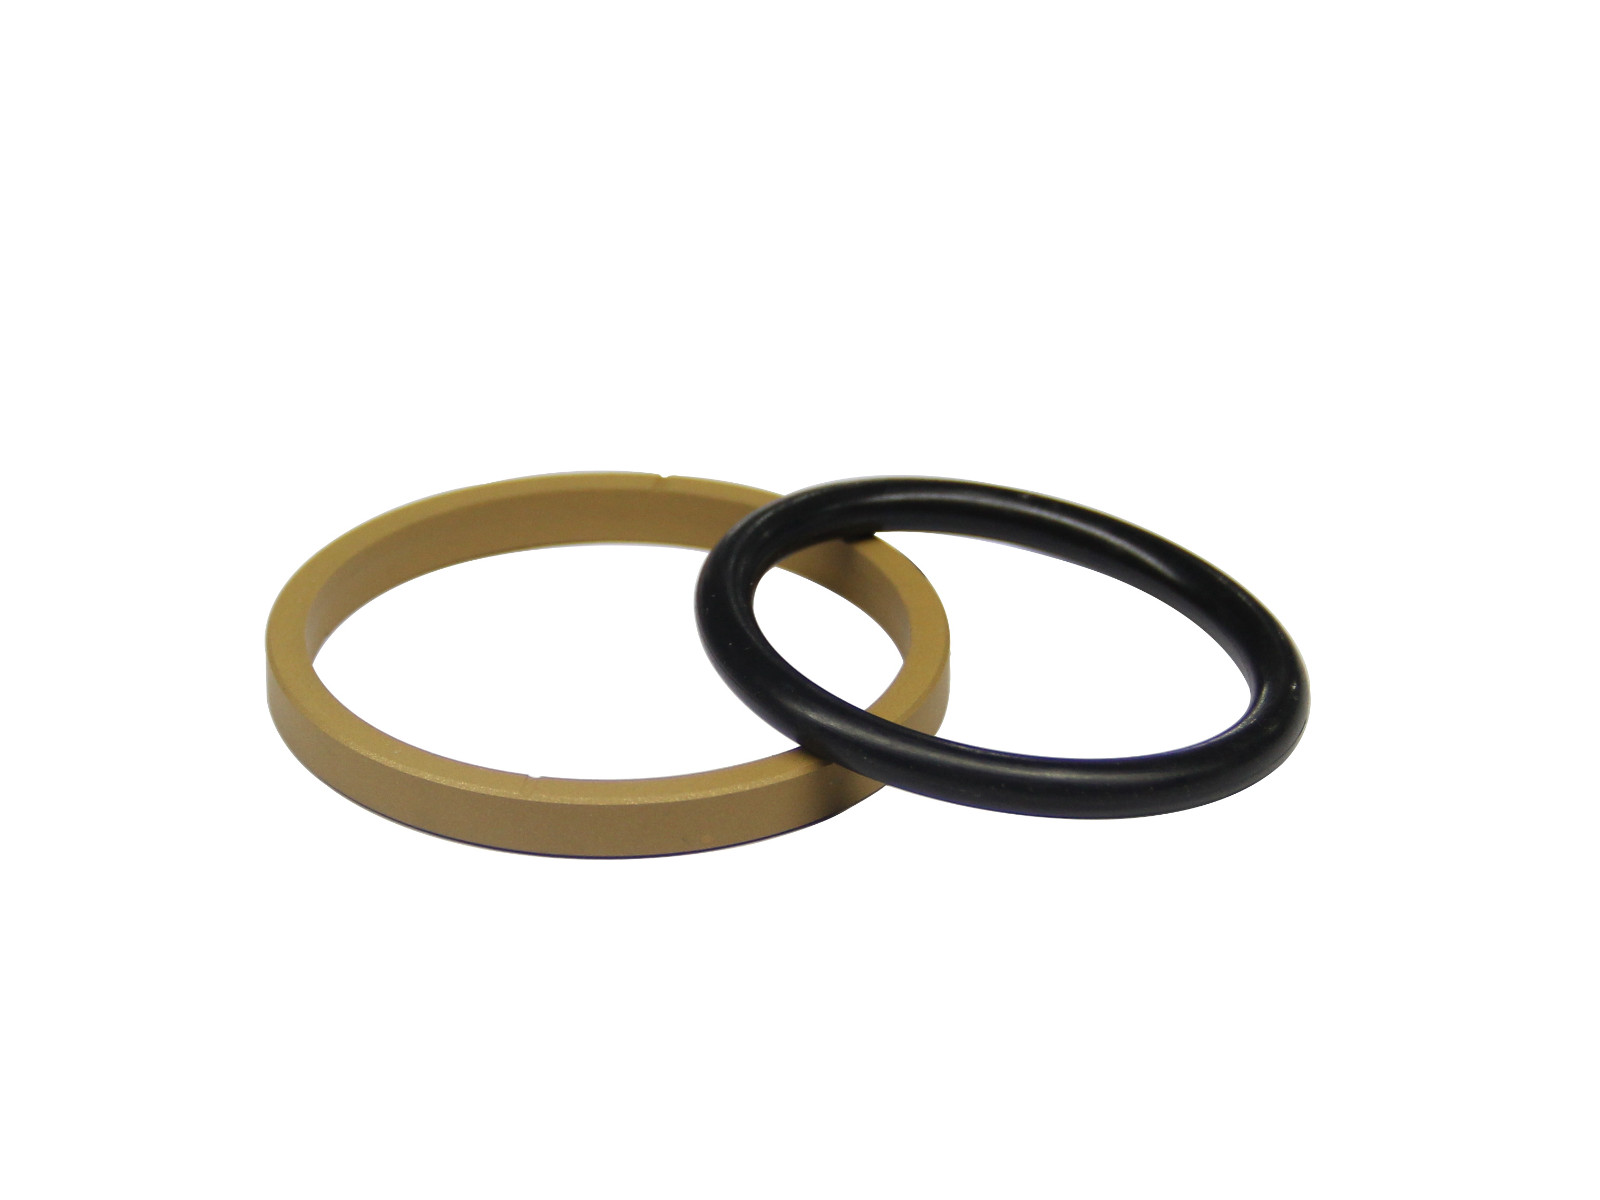 DSH-Piston Seal Design | Piston Seal Bronze Filled PTFE Glyd Ring-4